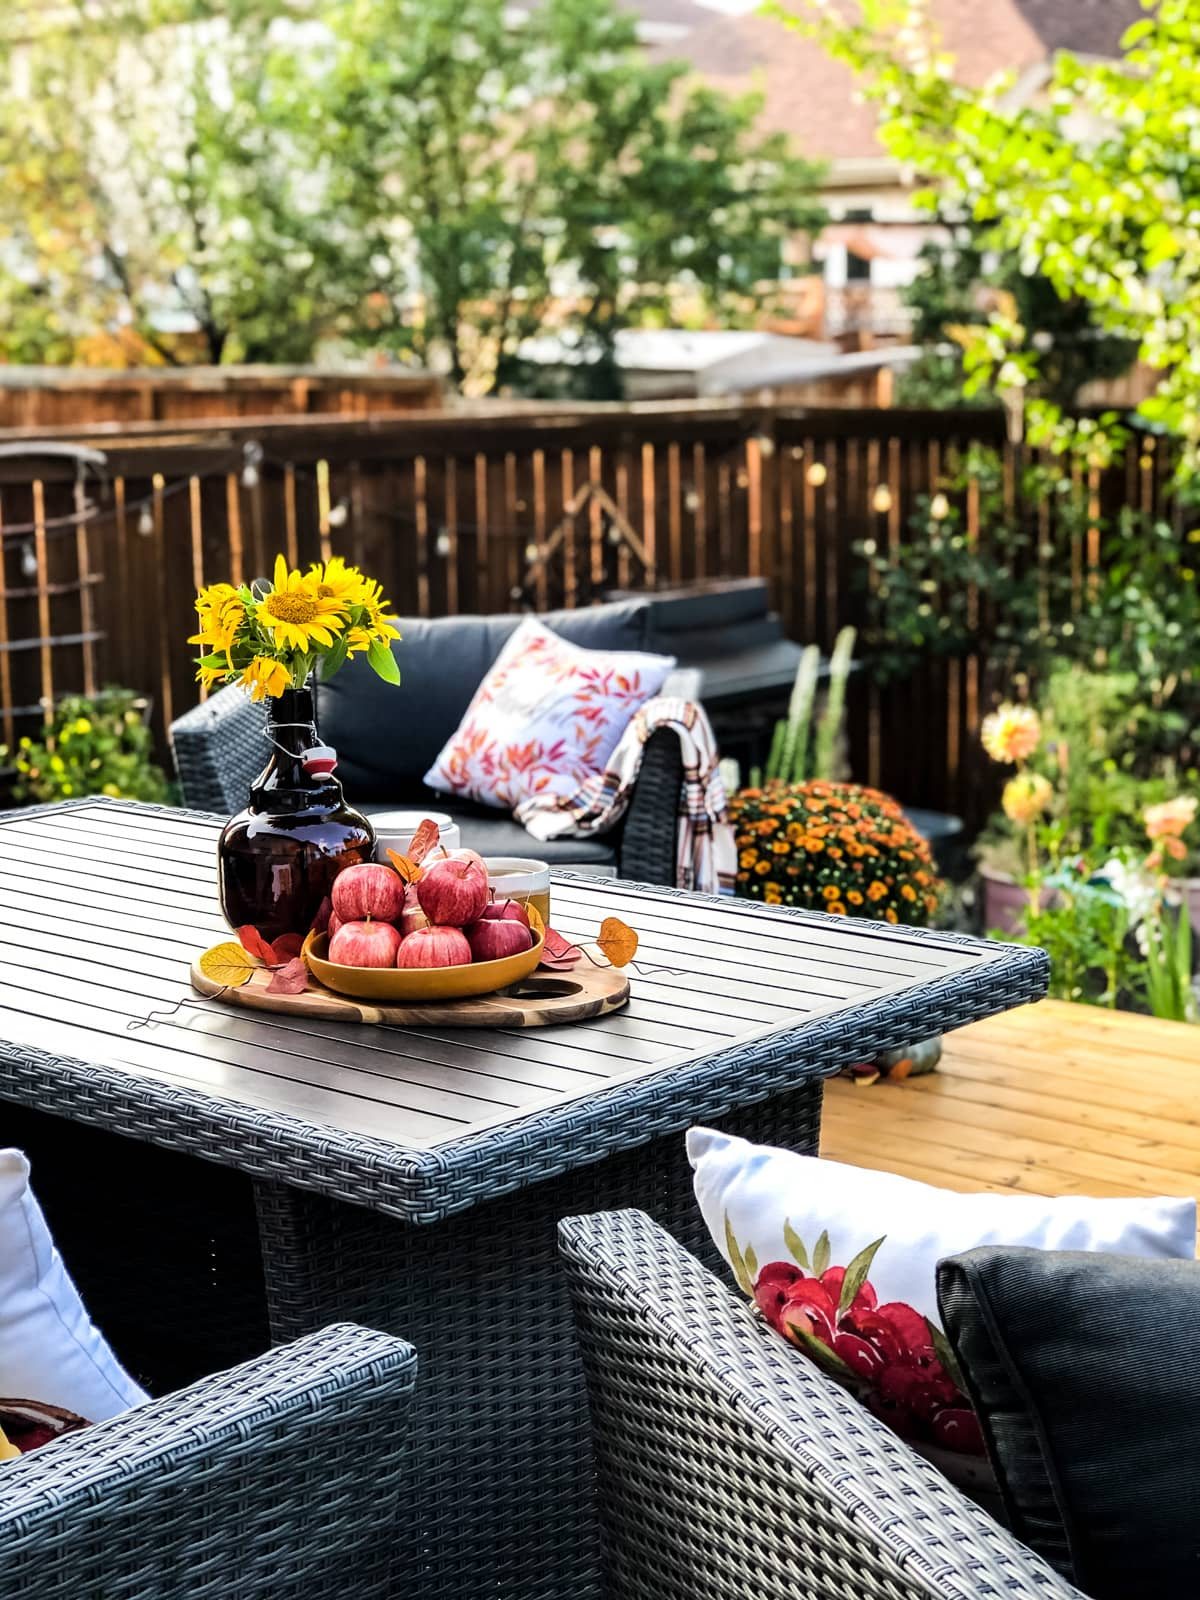 A fall table setting looking out into an urban backyard